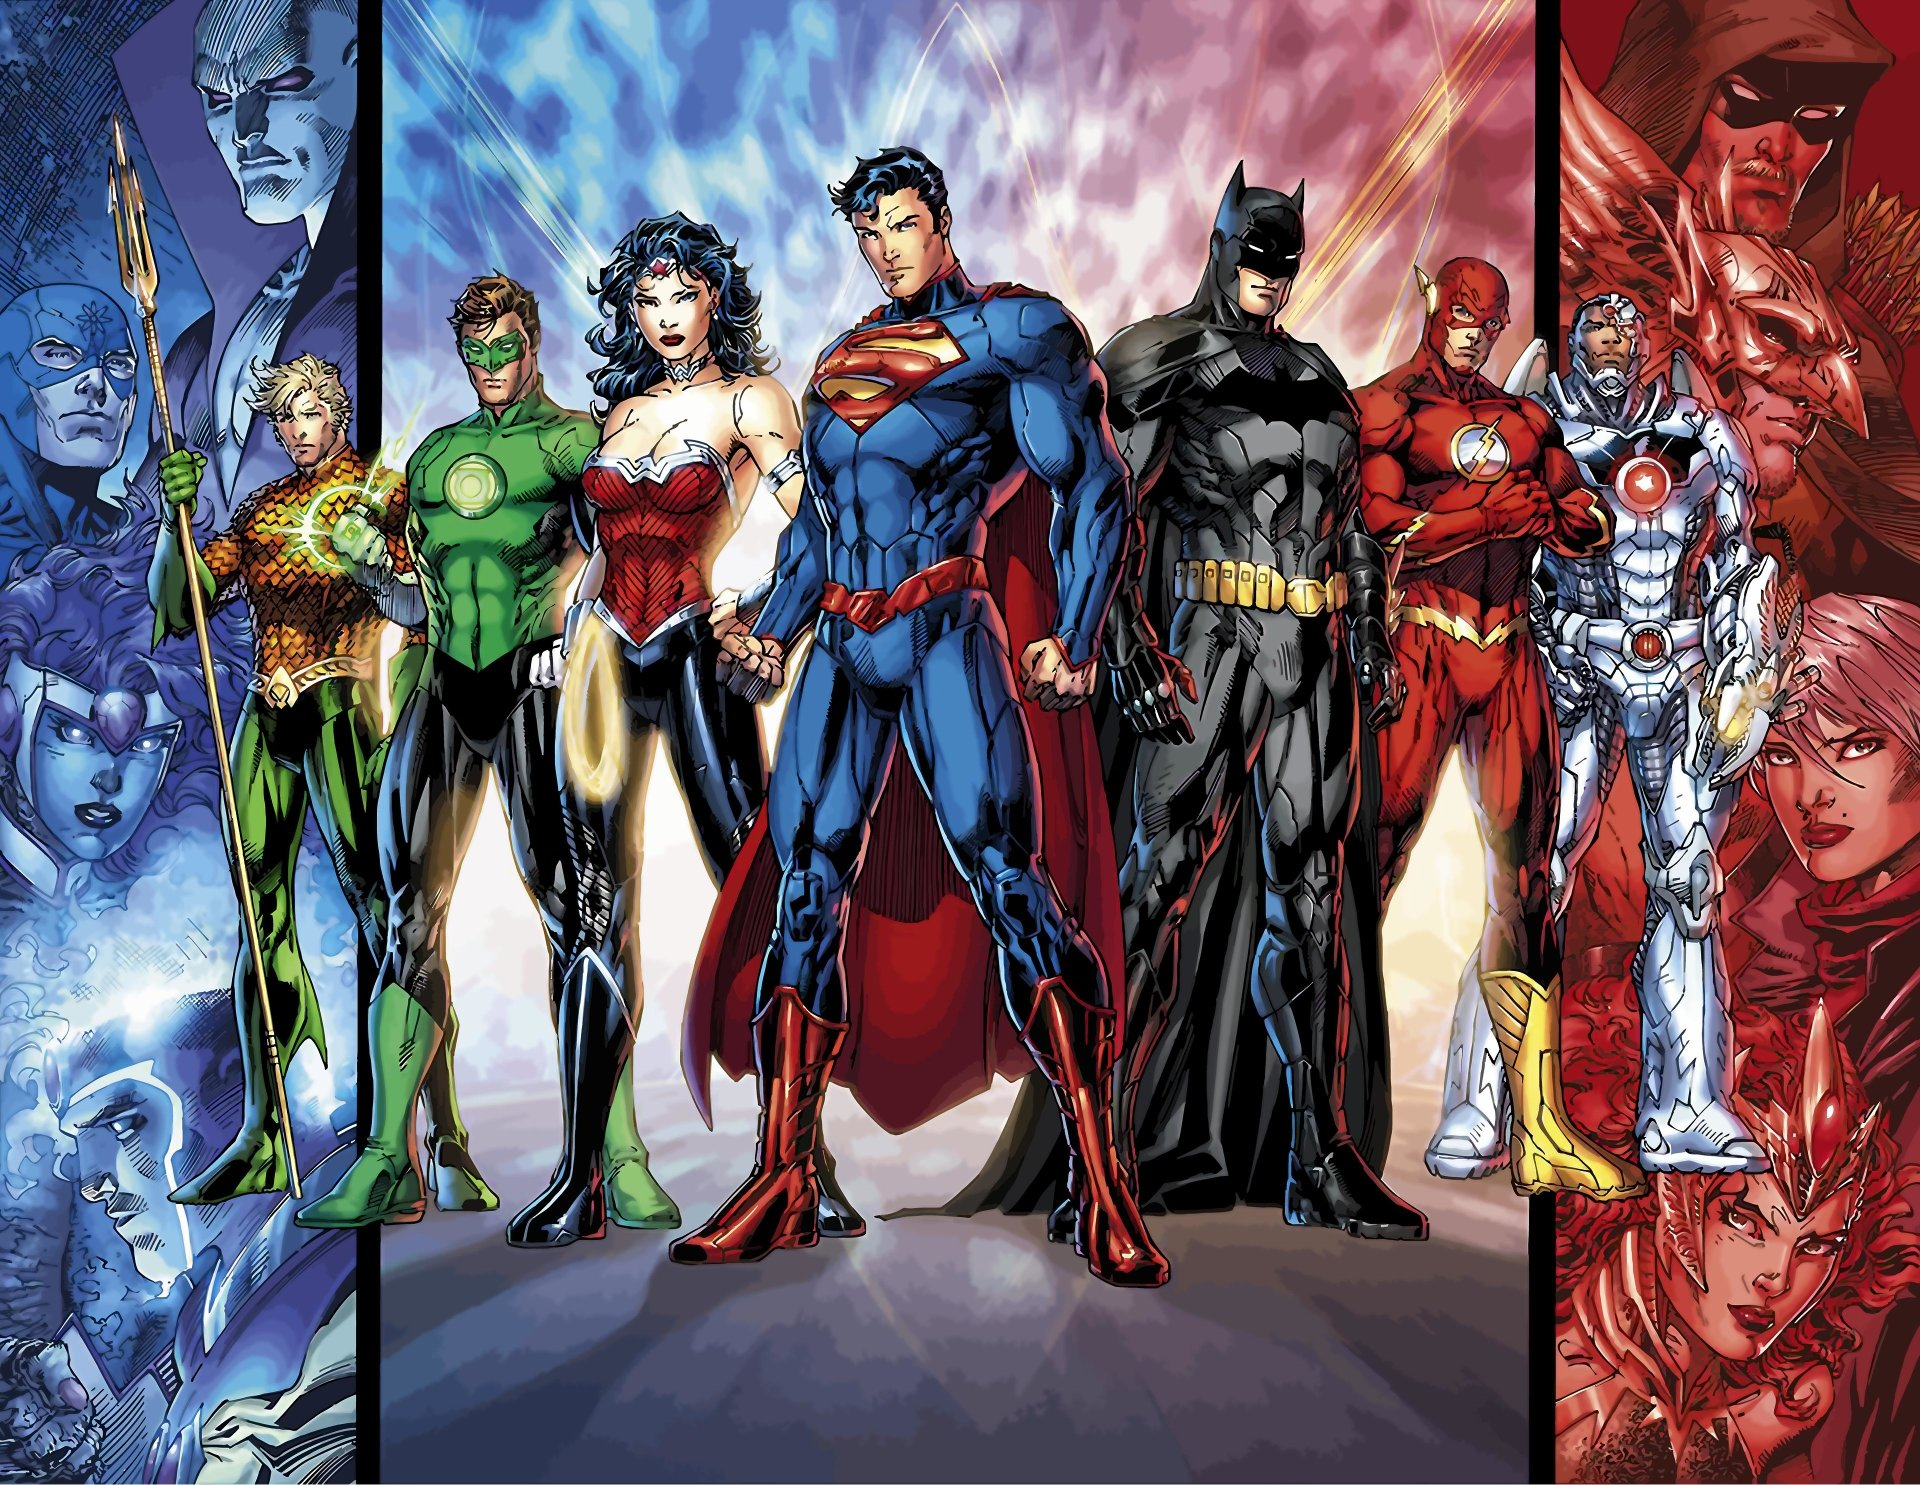 Comics - Justice League  DC Comics Superman Batman Flash Cyborg (DC Comics) Wonder Woman Green Lantern Aquaman Wallpaper